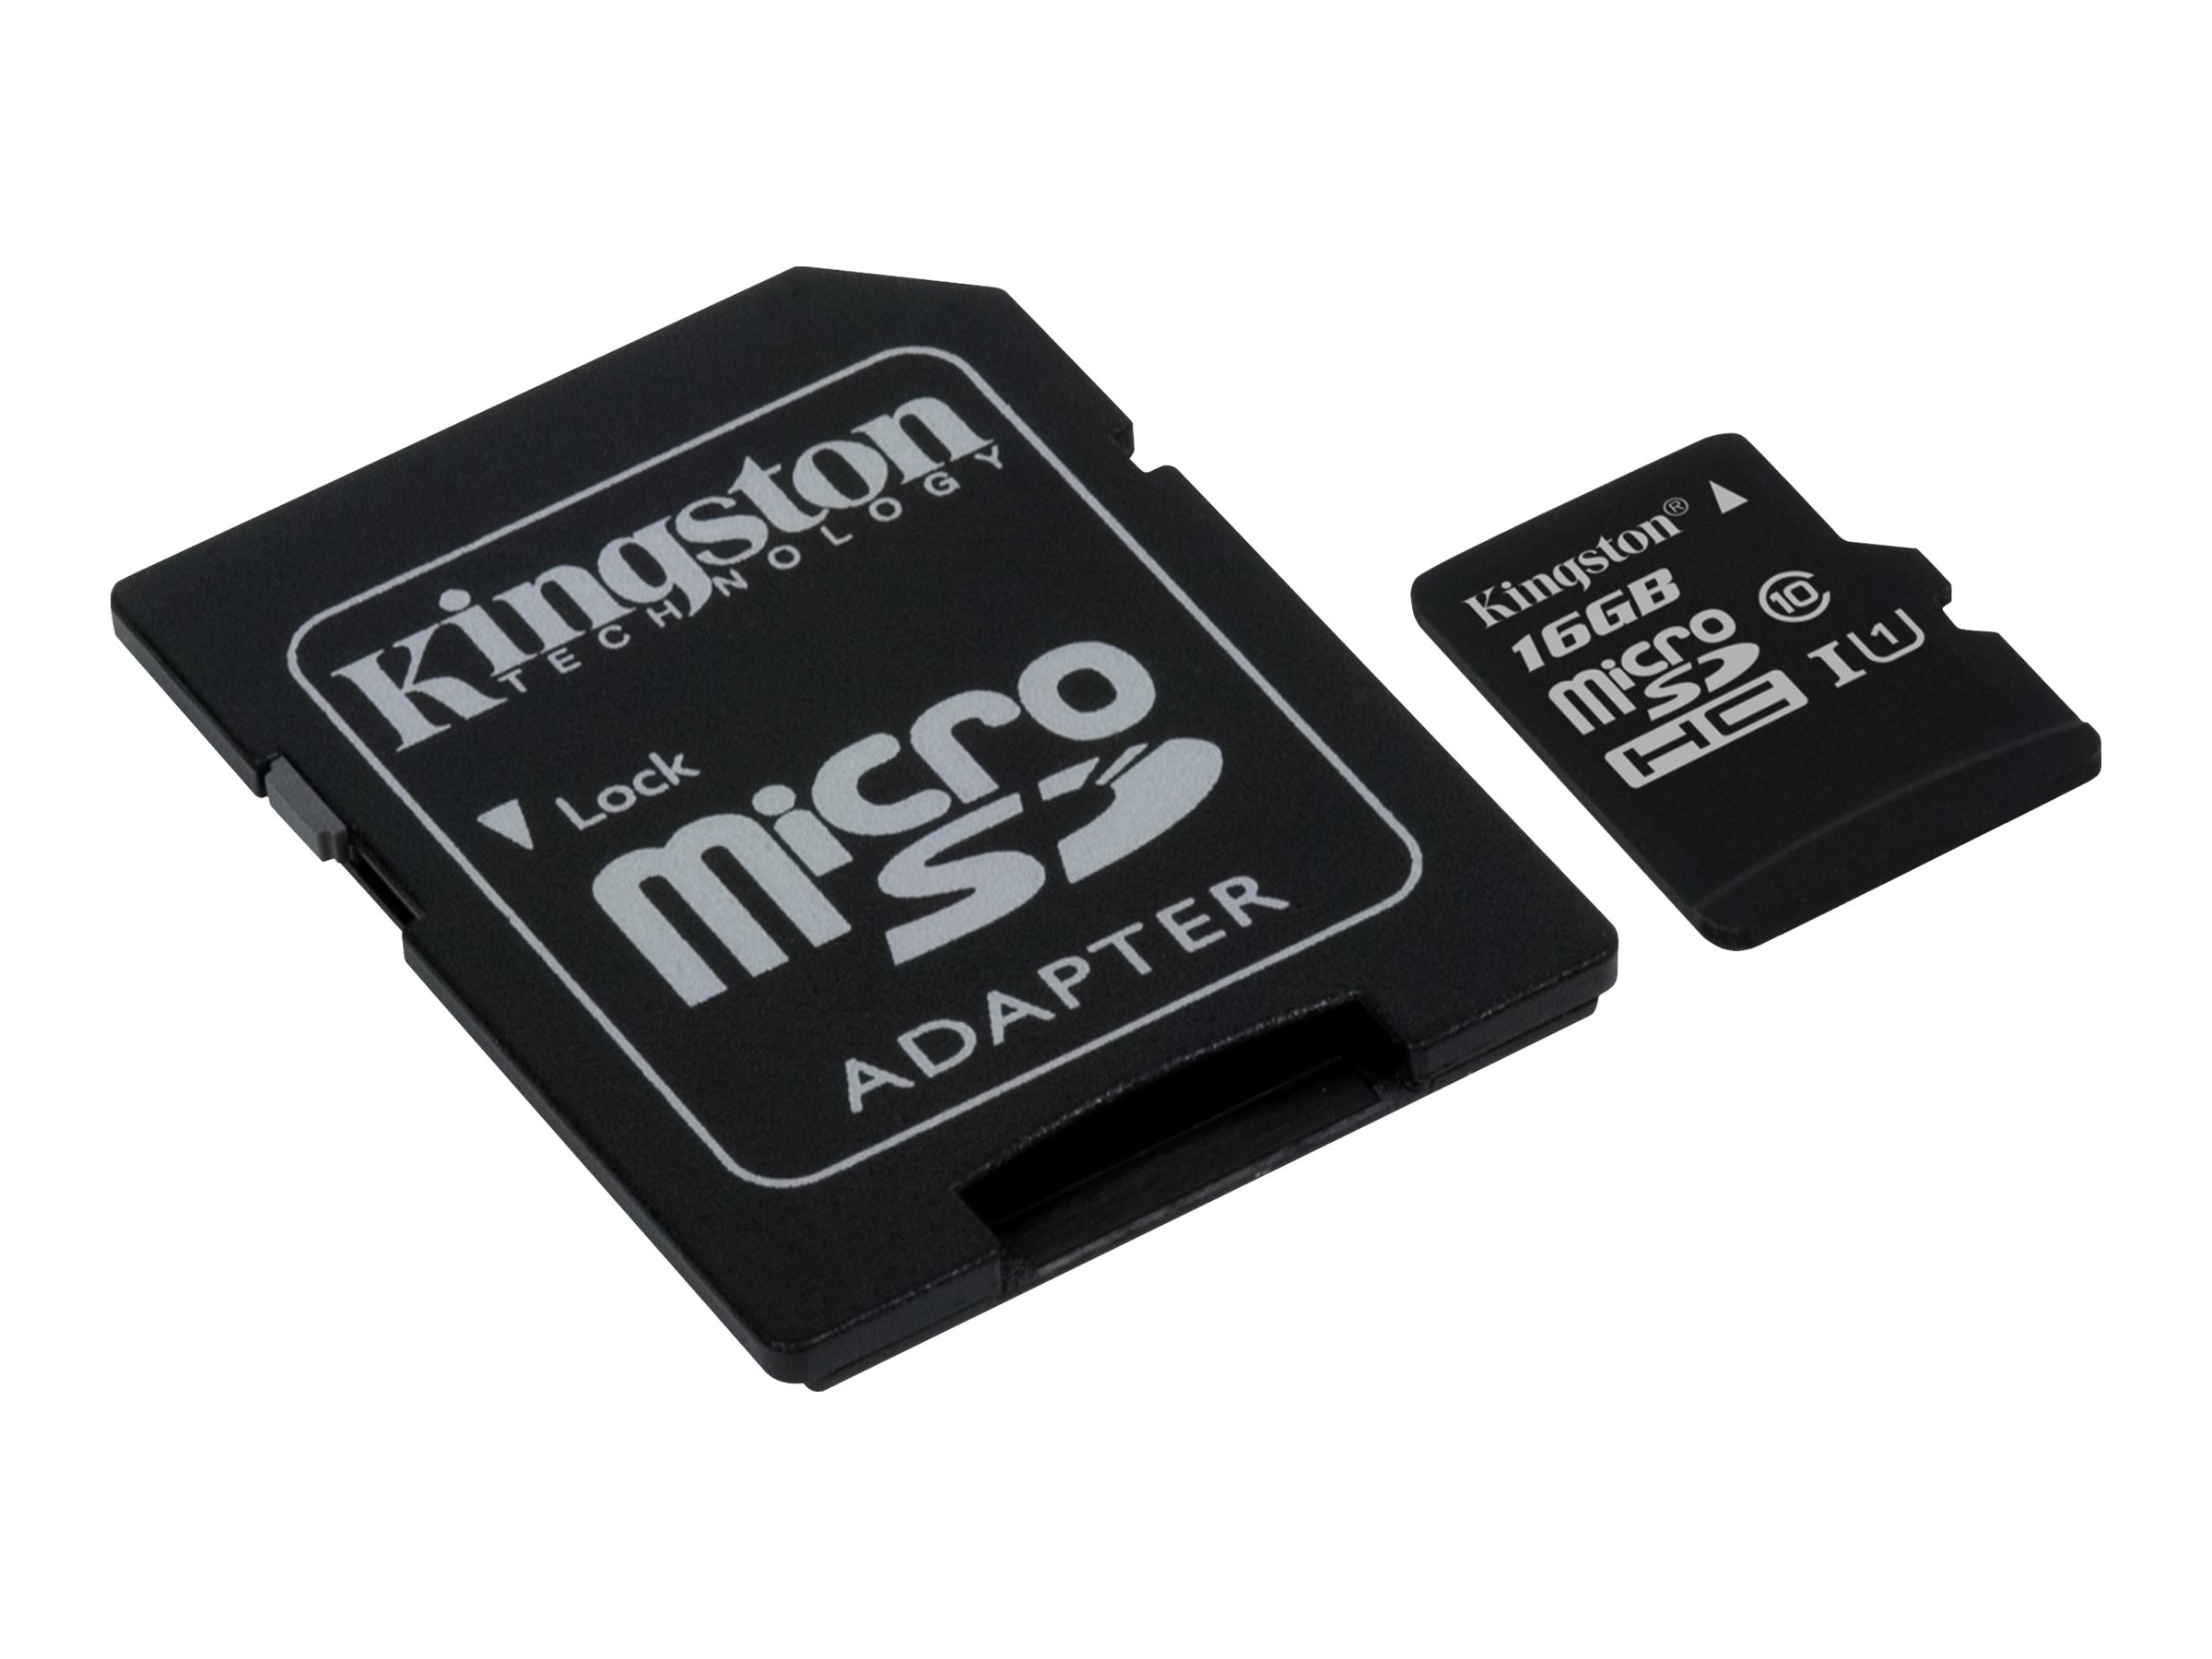 Kingston 16GB UHS-I microSDHC Flash Memory Card with SD Adapter, Class 10